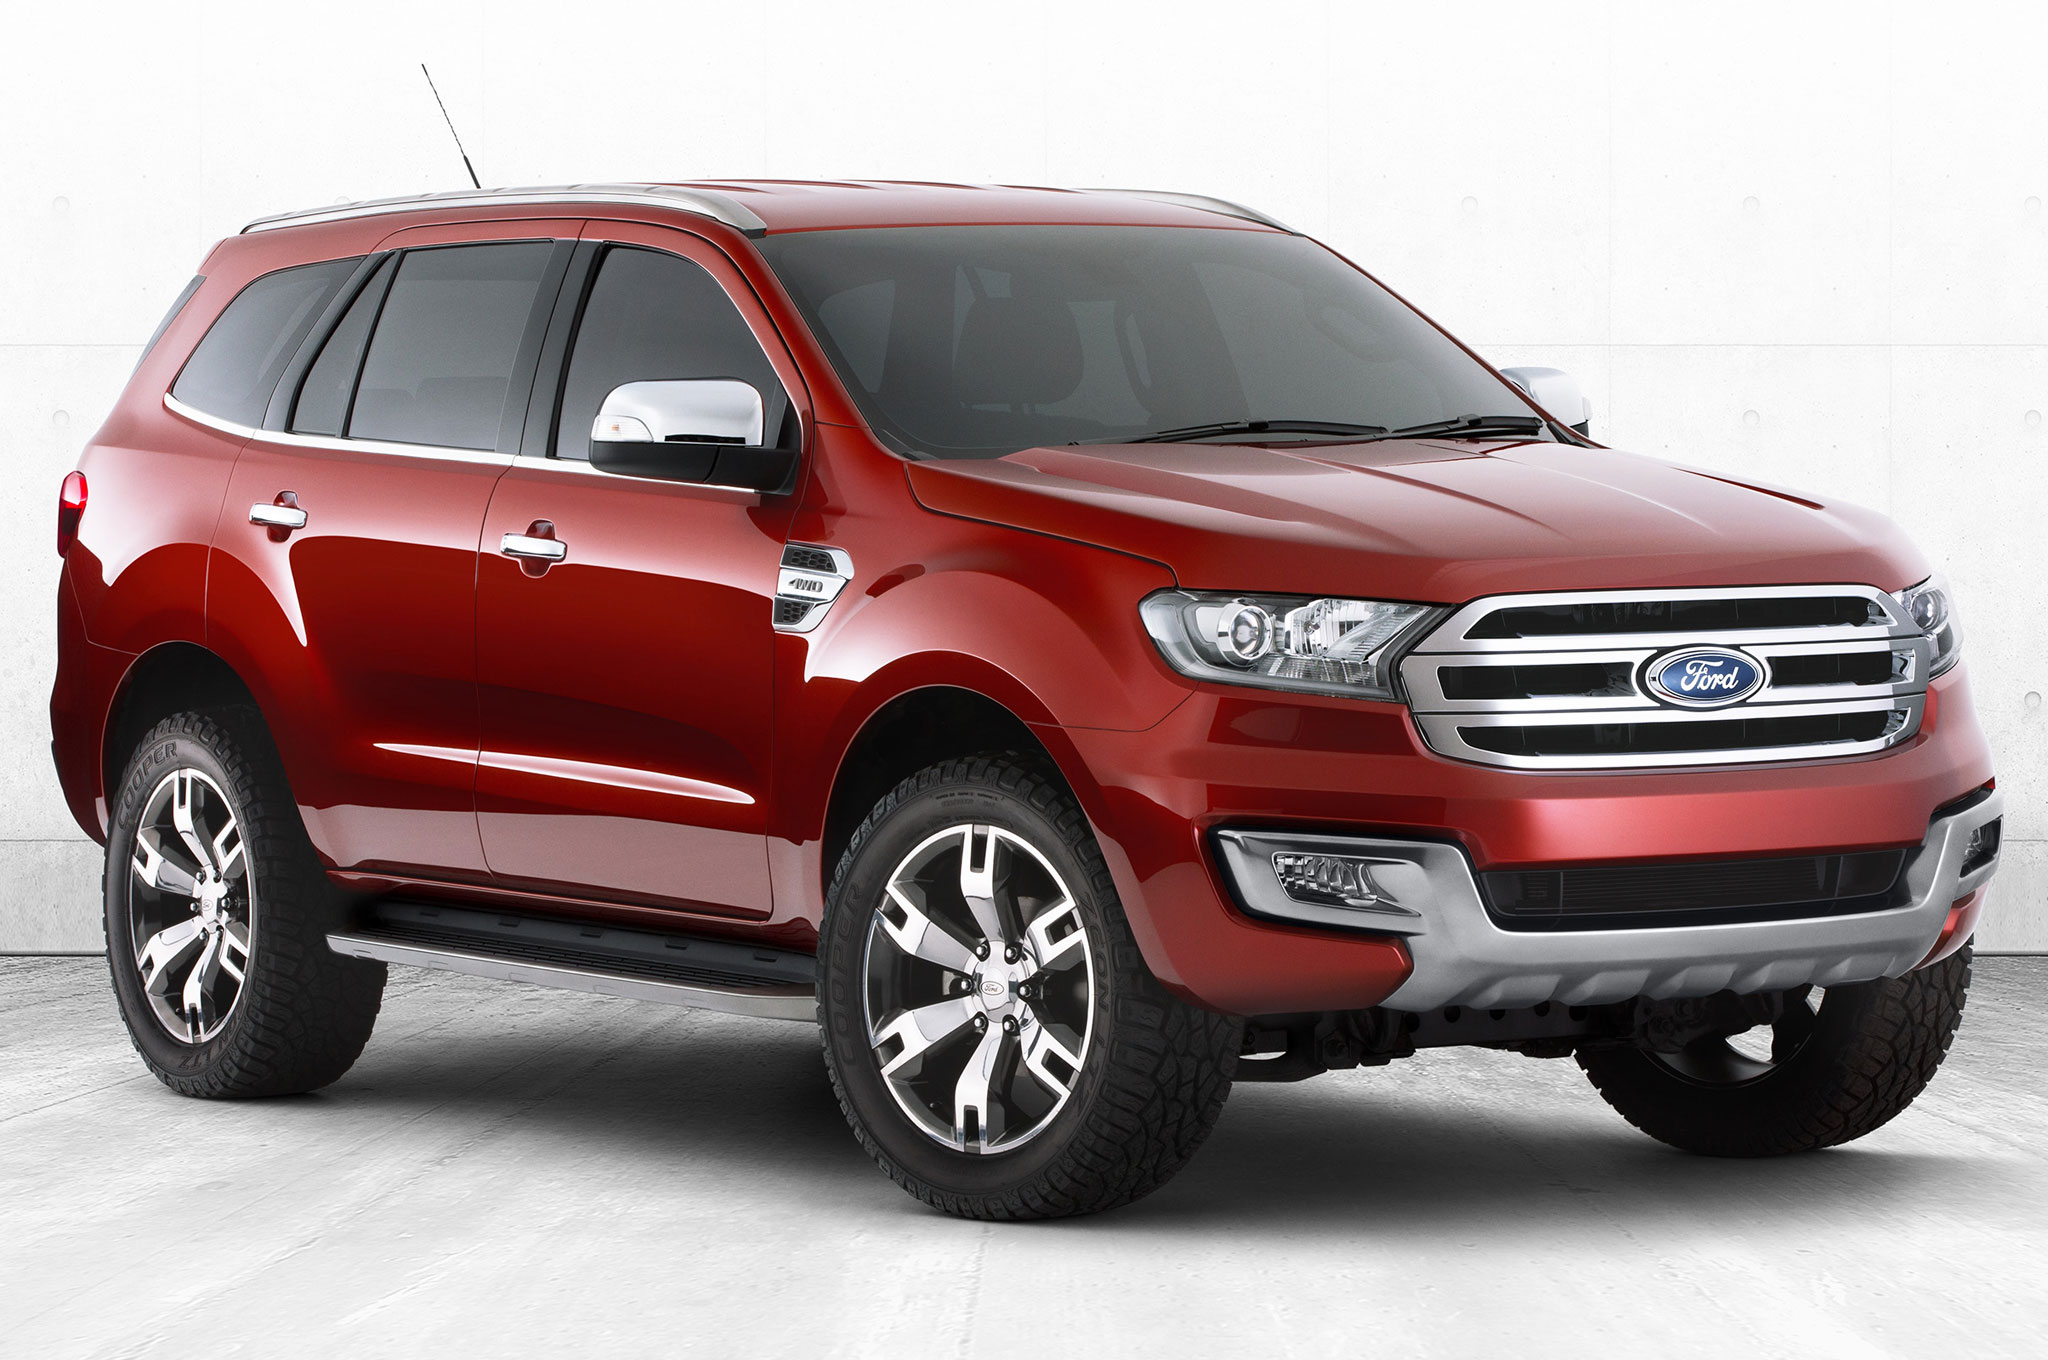 h oz bronco be new ford suvs everest news engineered to in